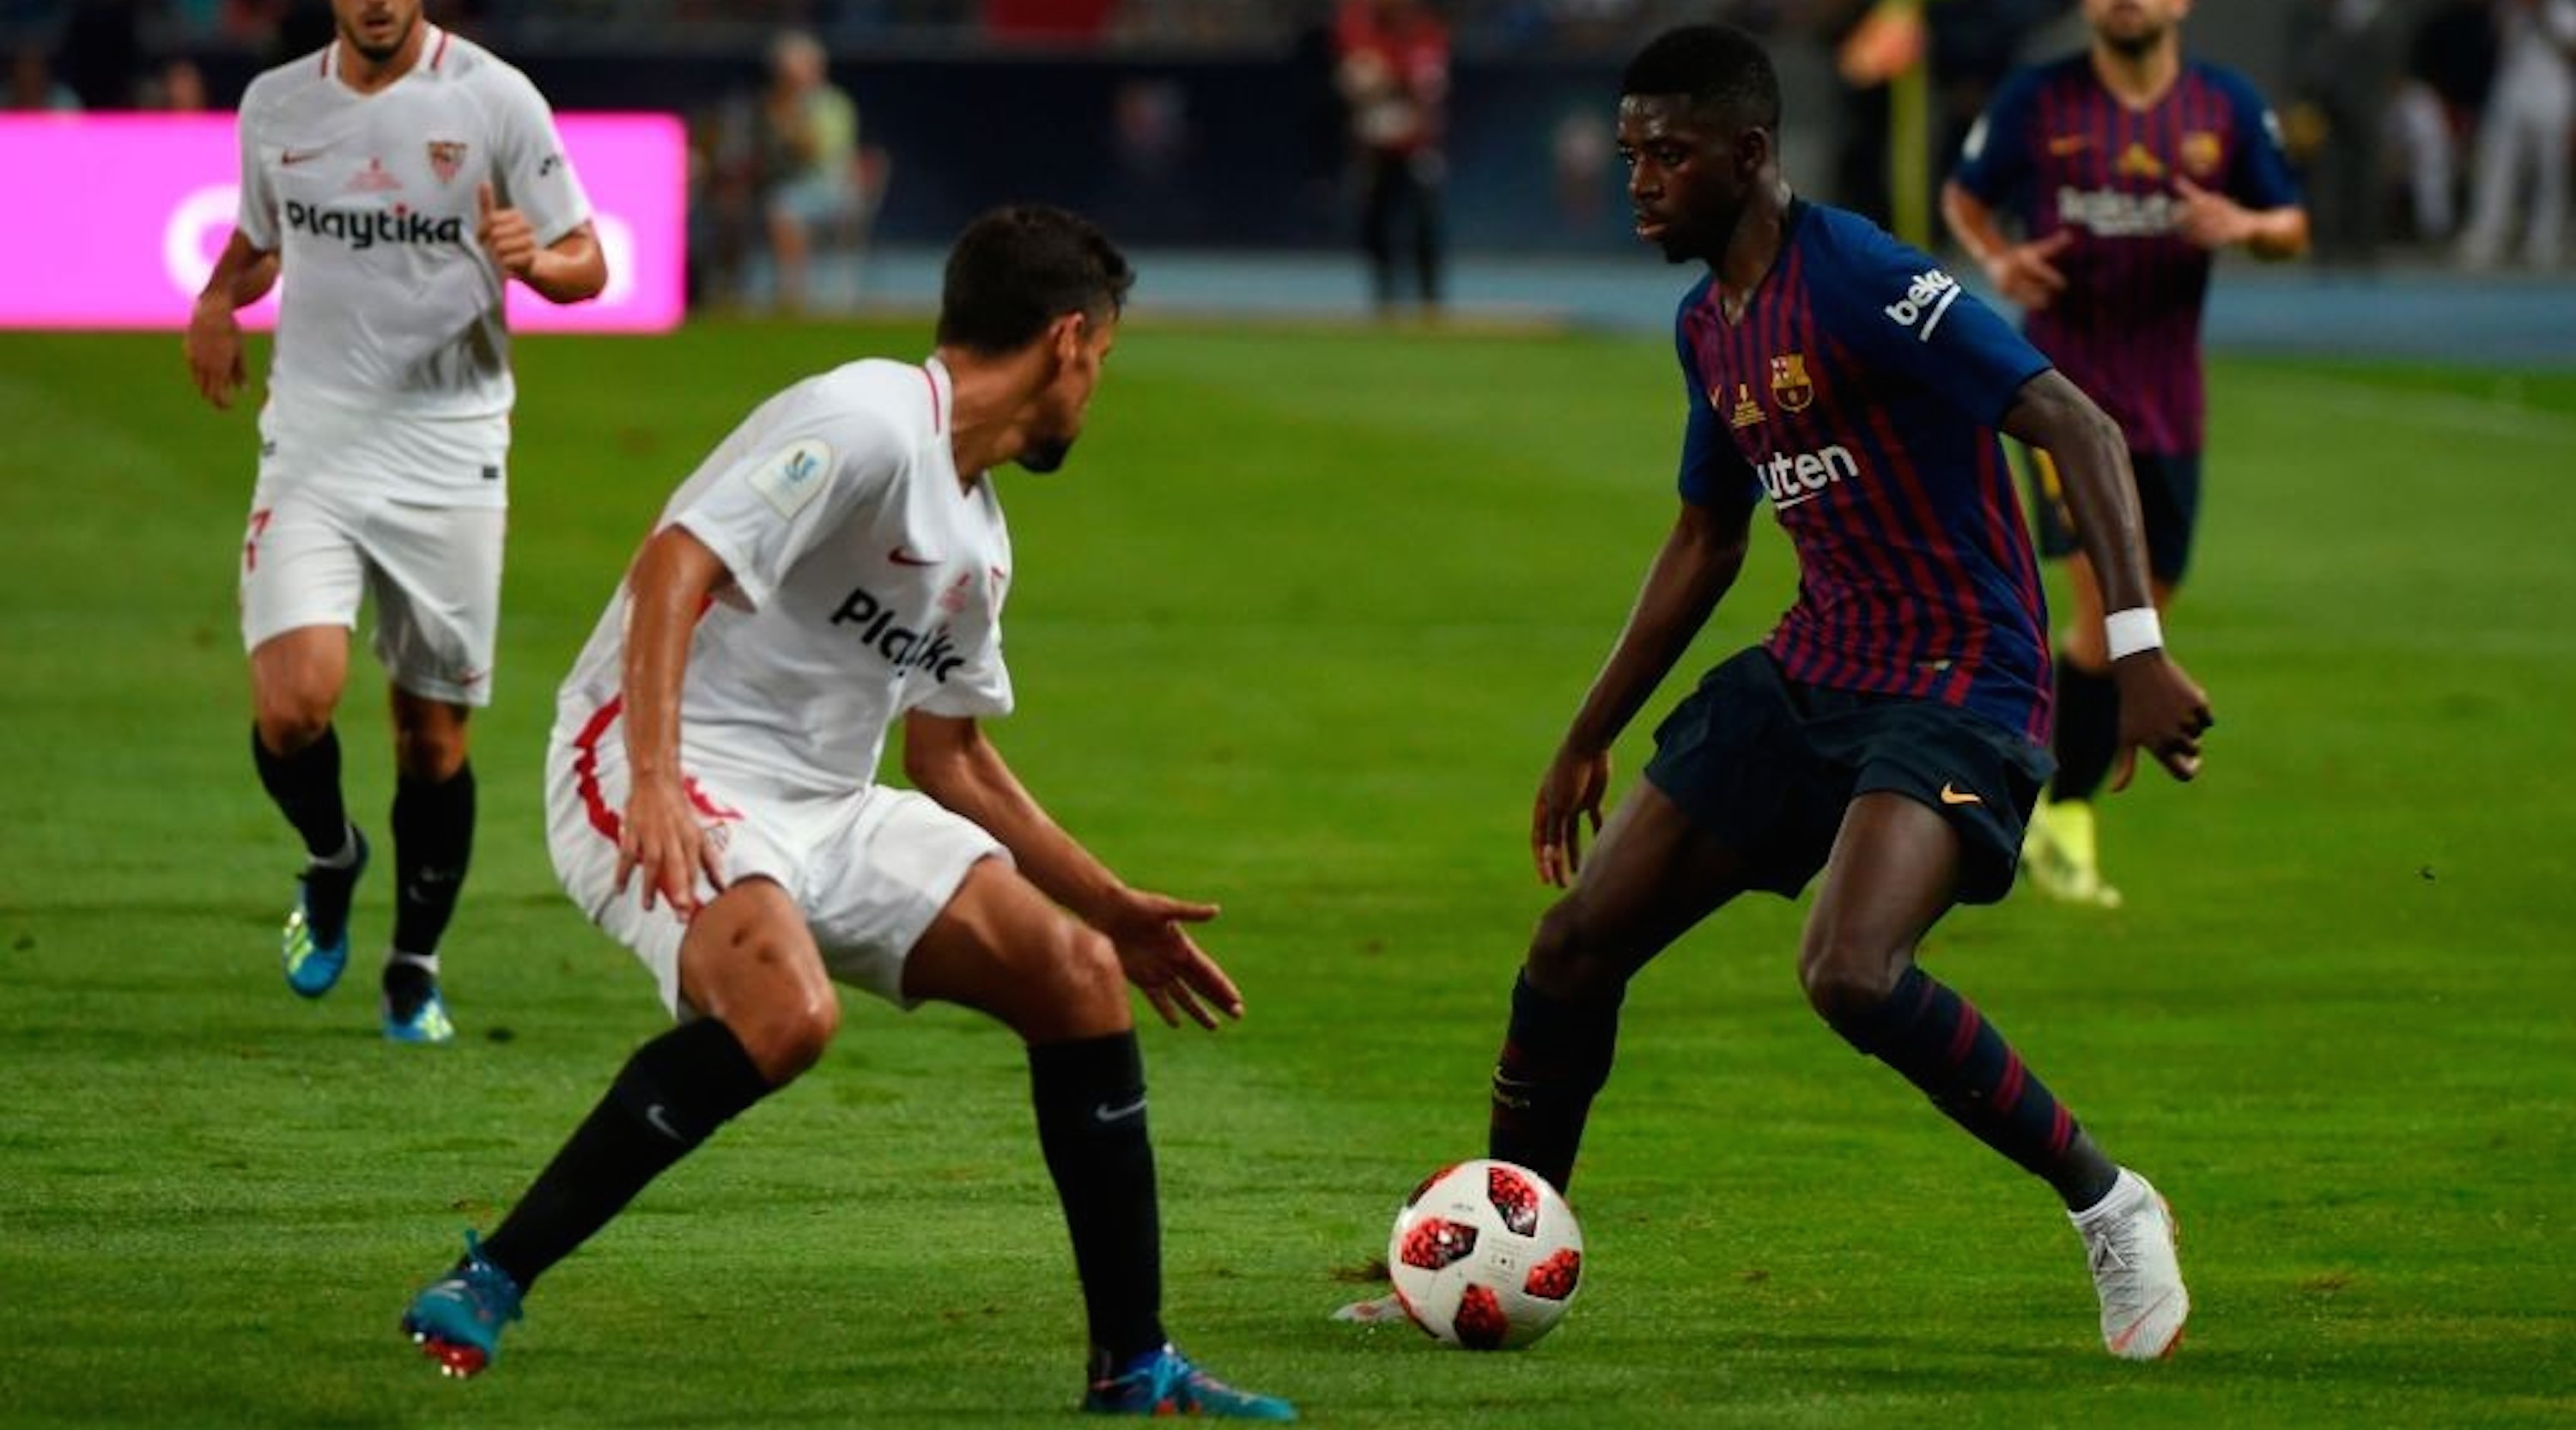 Sevilla's Spanish midfielder Jesus Navas (L) vies with Barcelona's French forward Ousmane Dembele during the Spanish Super Cup final between Sevilla and FC Barcelona at Ibn Batouta stadium in the Moroccan city of Tangiers on August 12, 2018. (Photo by FADEL SENNA / AFP) (Photo credit should read FADEL SENNA/AFP/Getty Images)